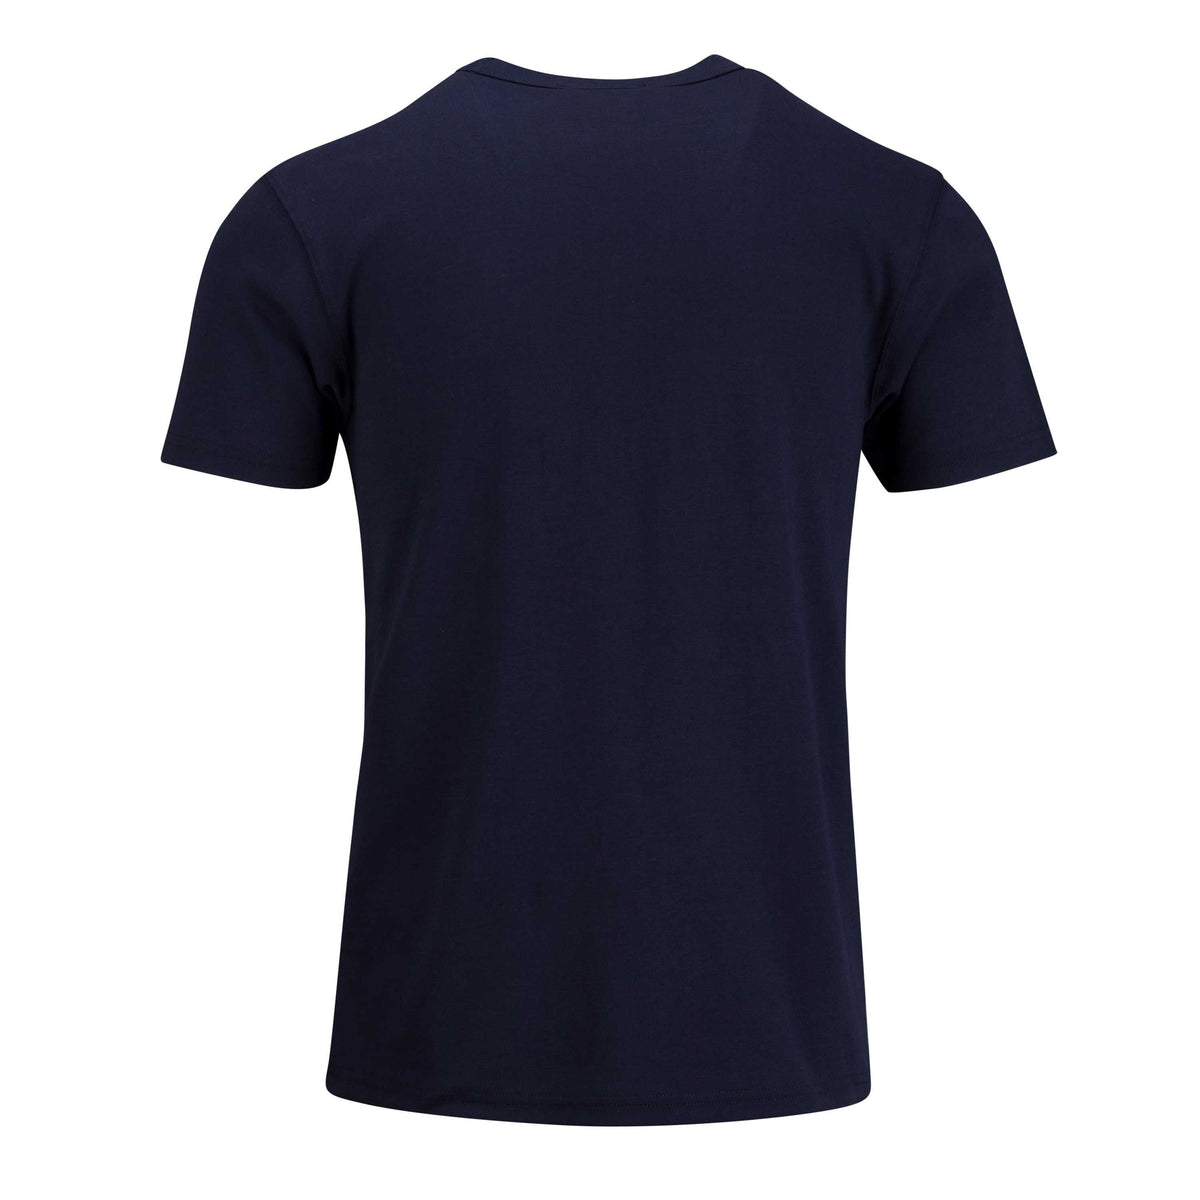 Belstaff Applique T-Shirt